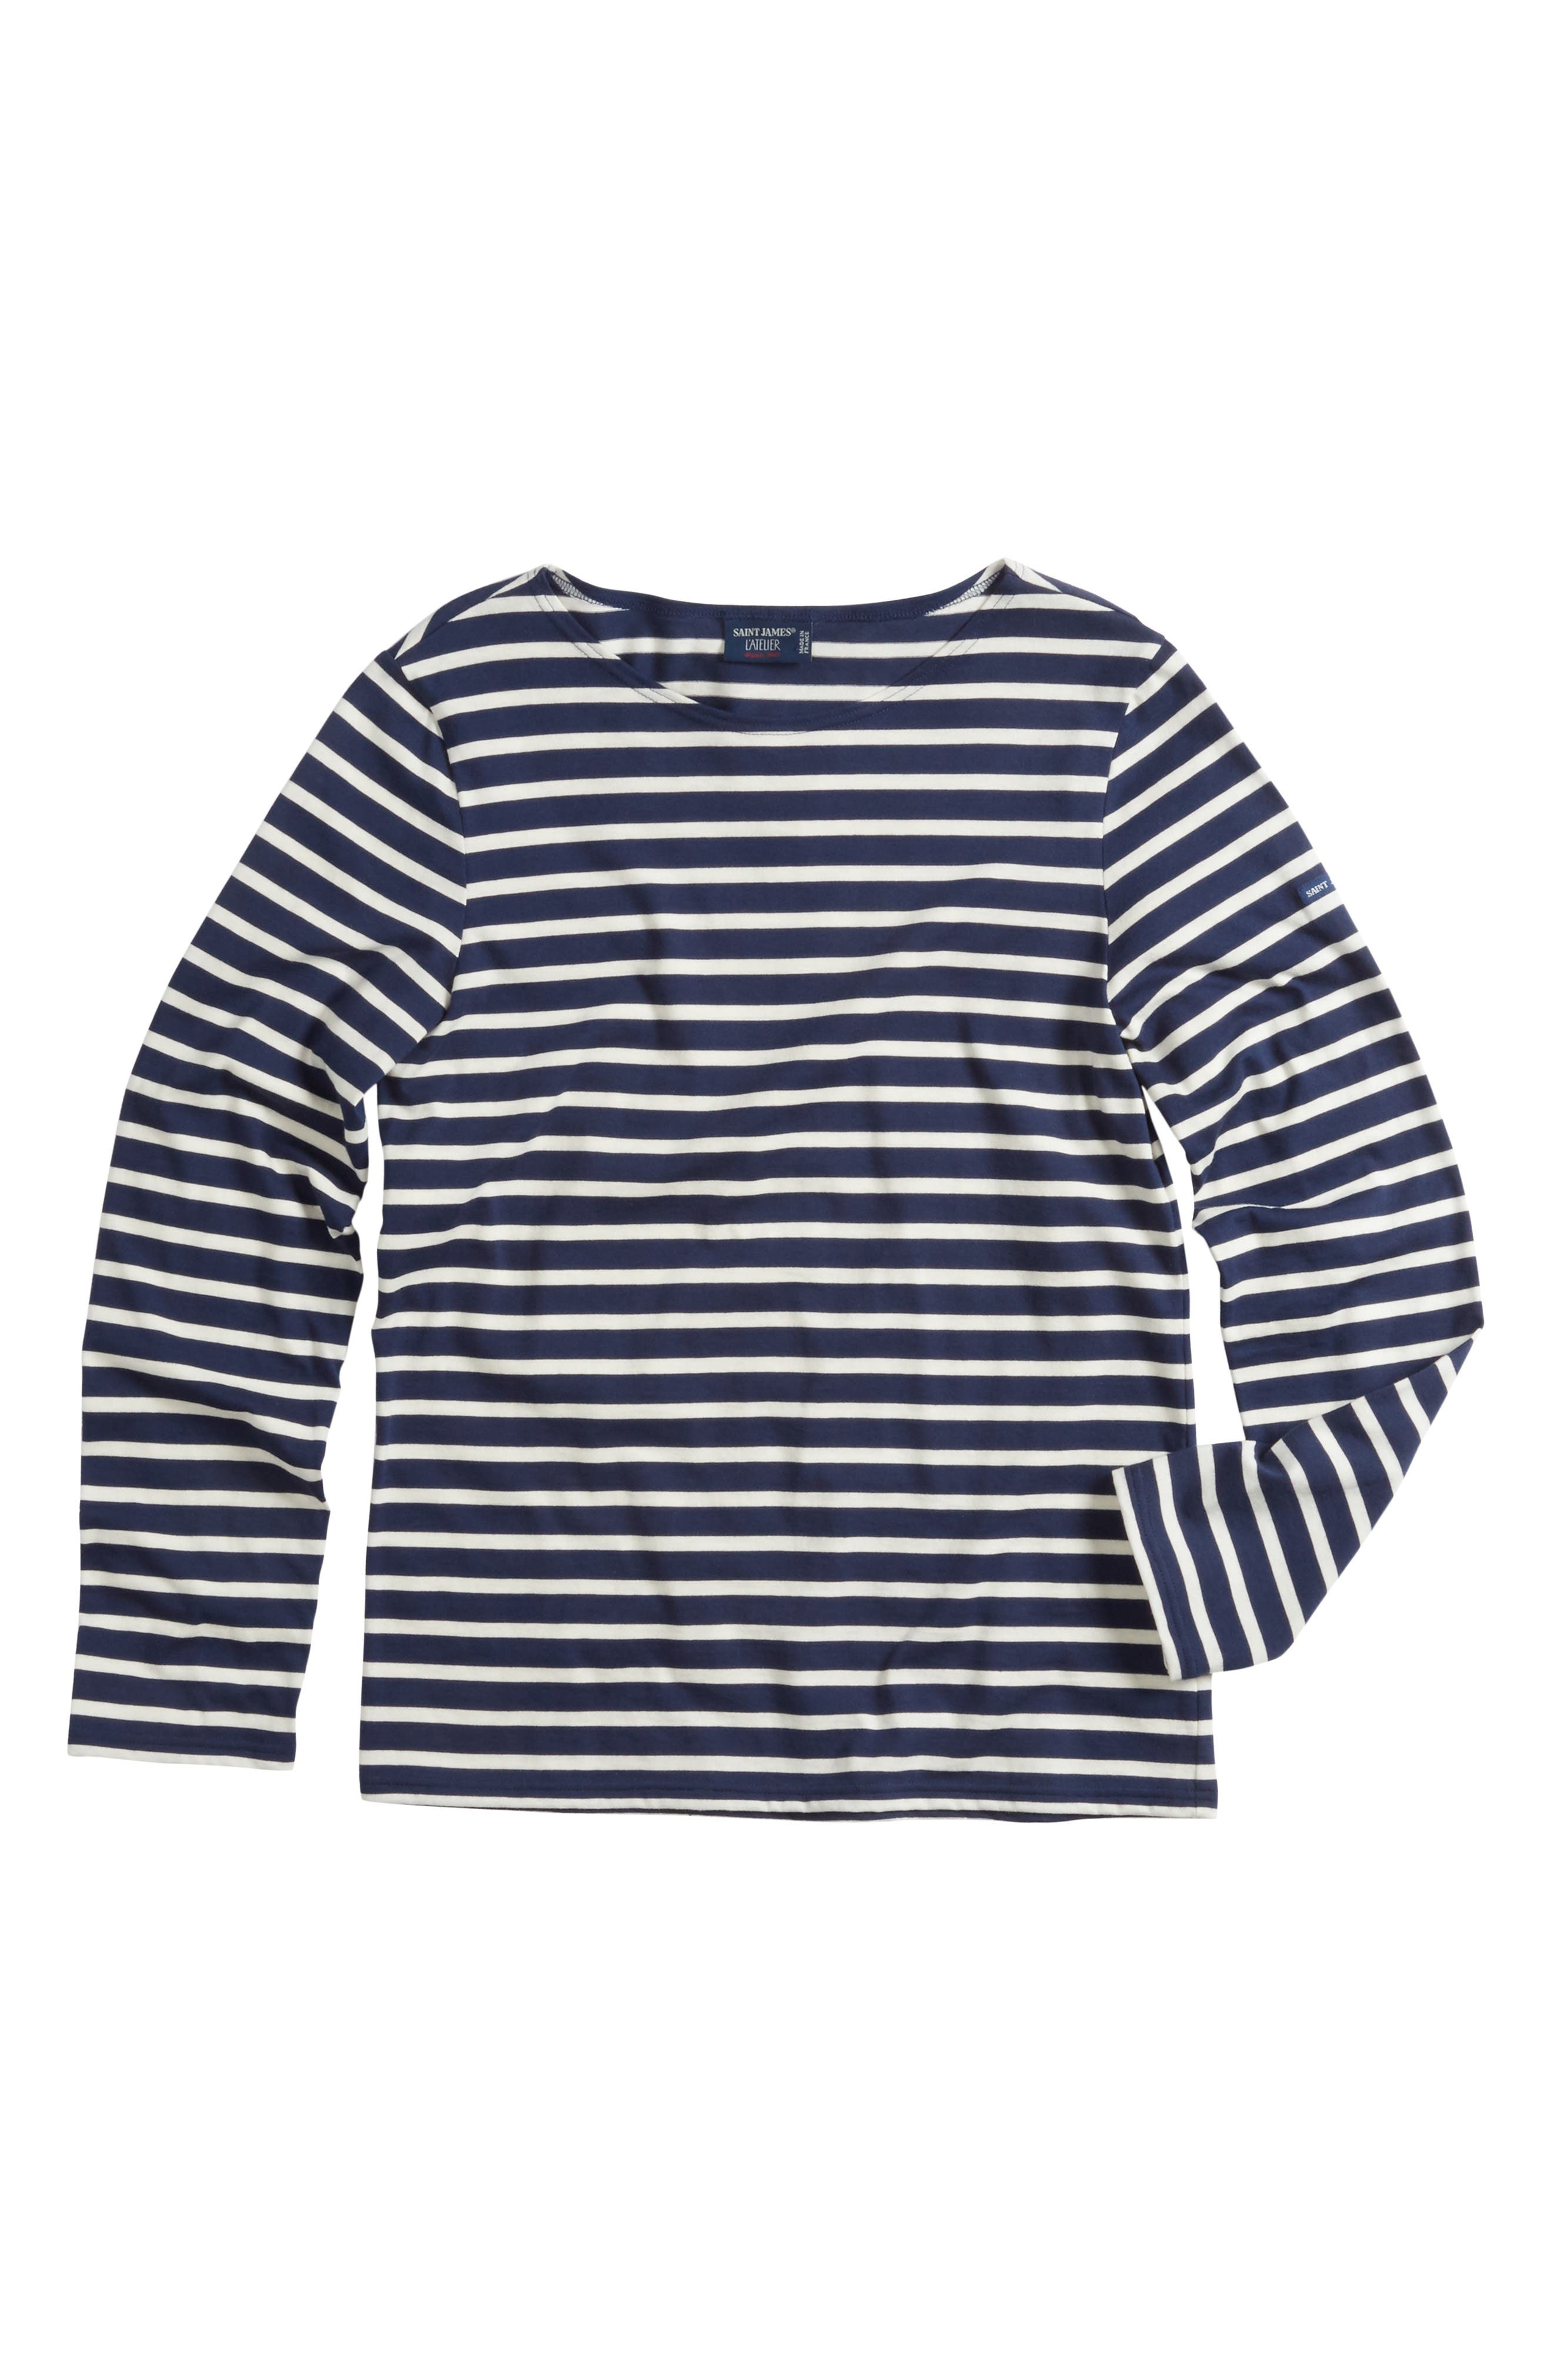 Main Image - Saint James Minquiers Moderne Striped Sailor Shirt (Unisex)